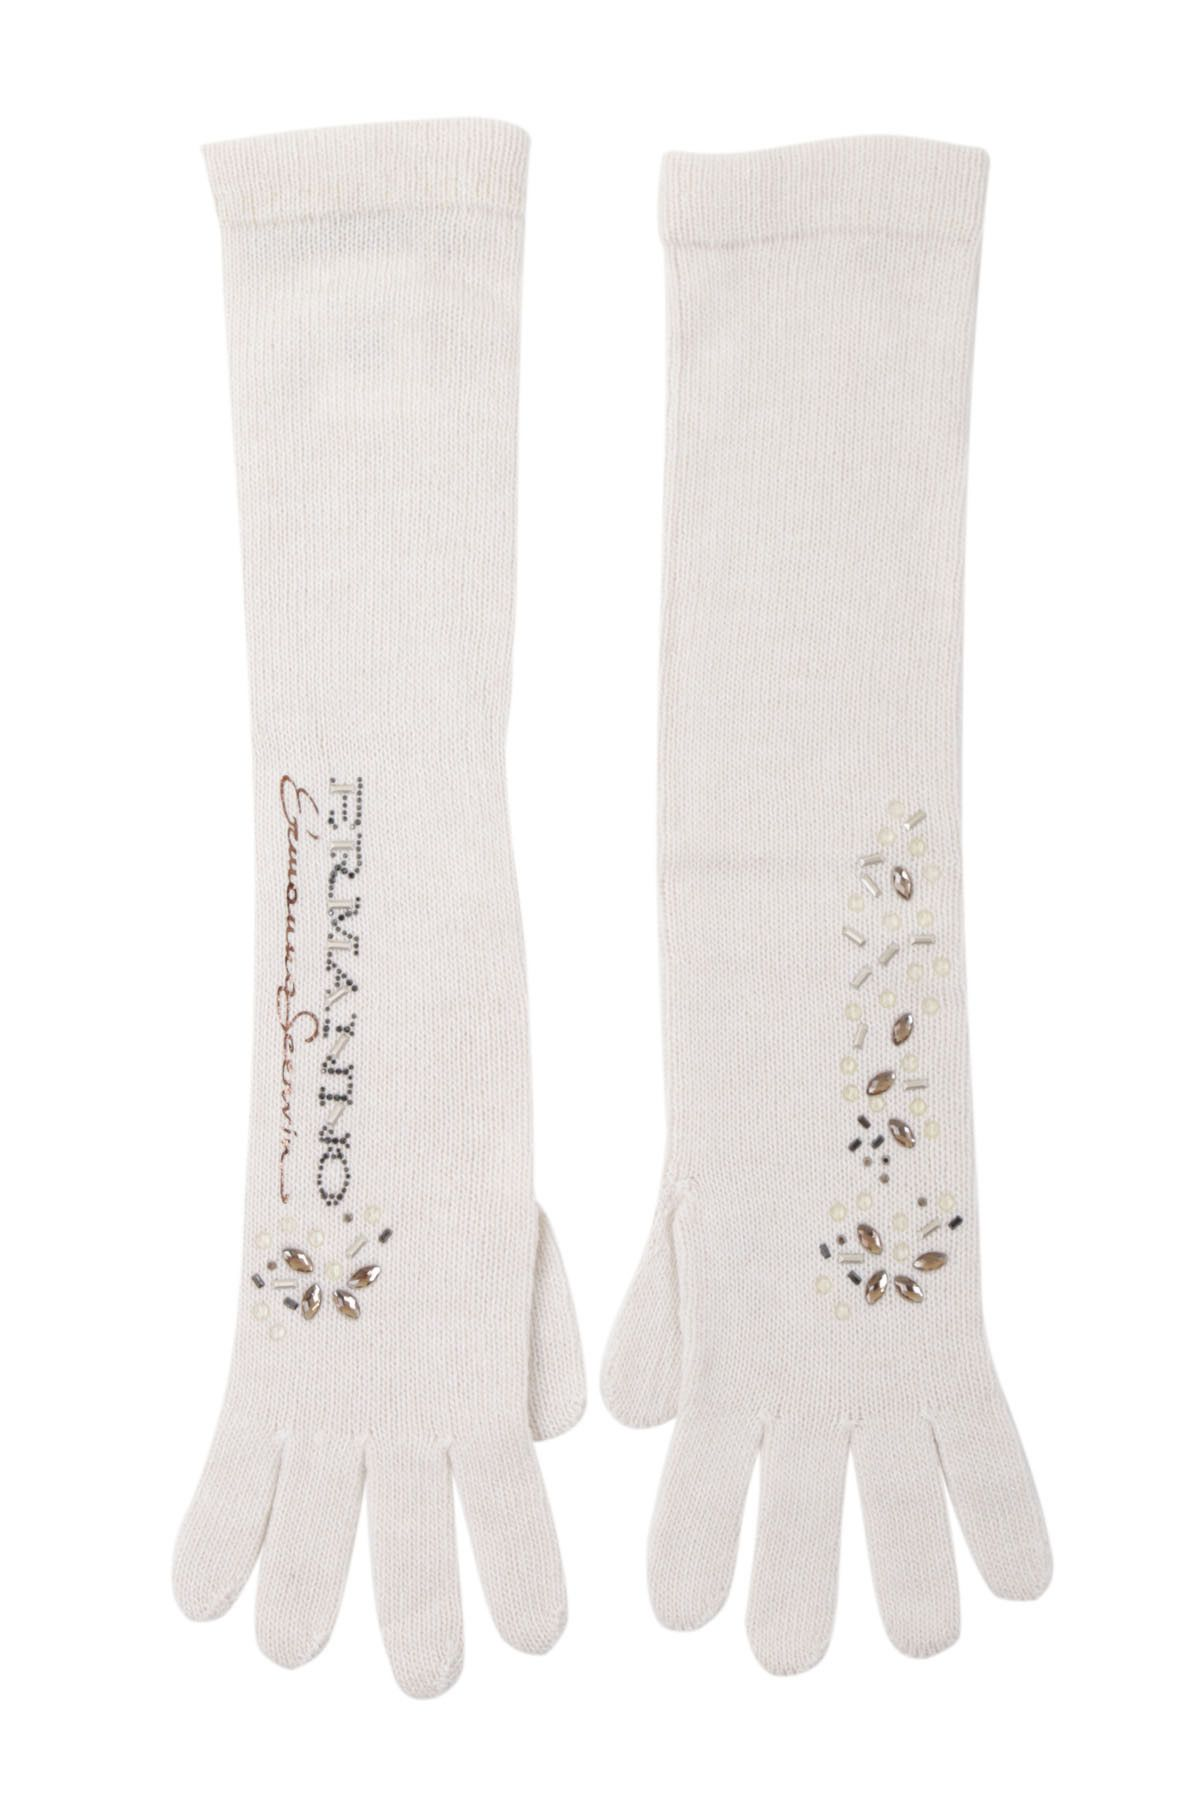 Ermanno Scervino Women's Gloves In White